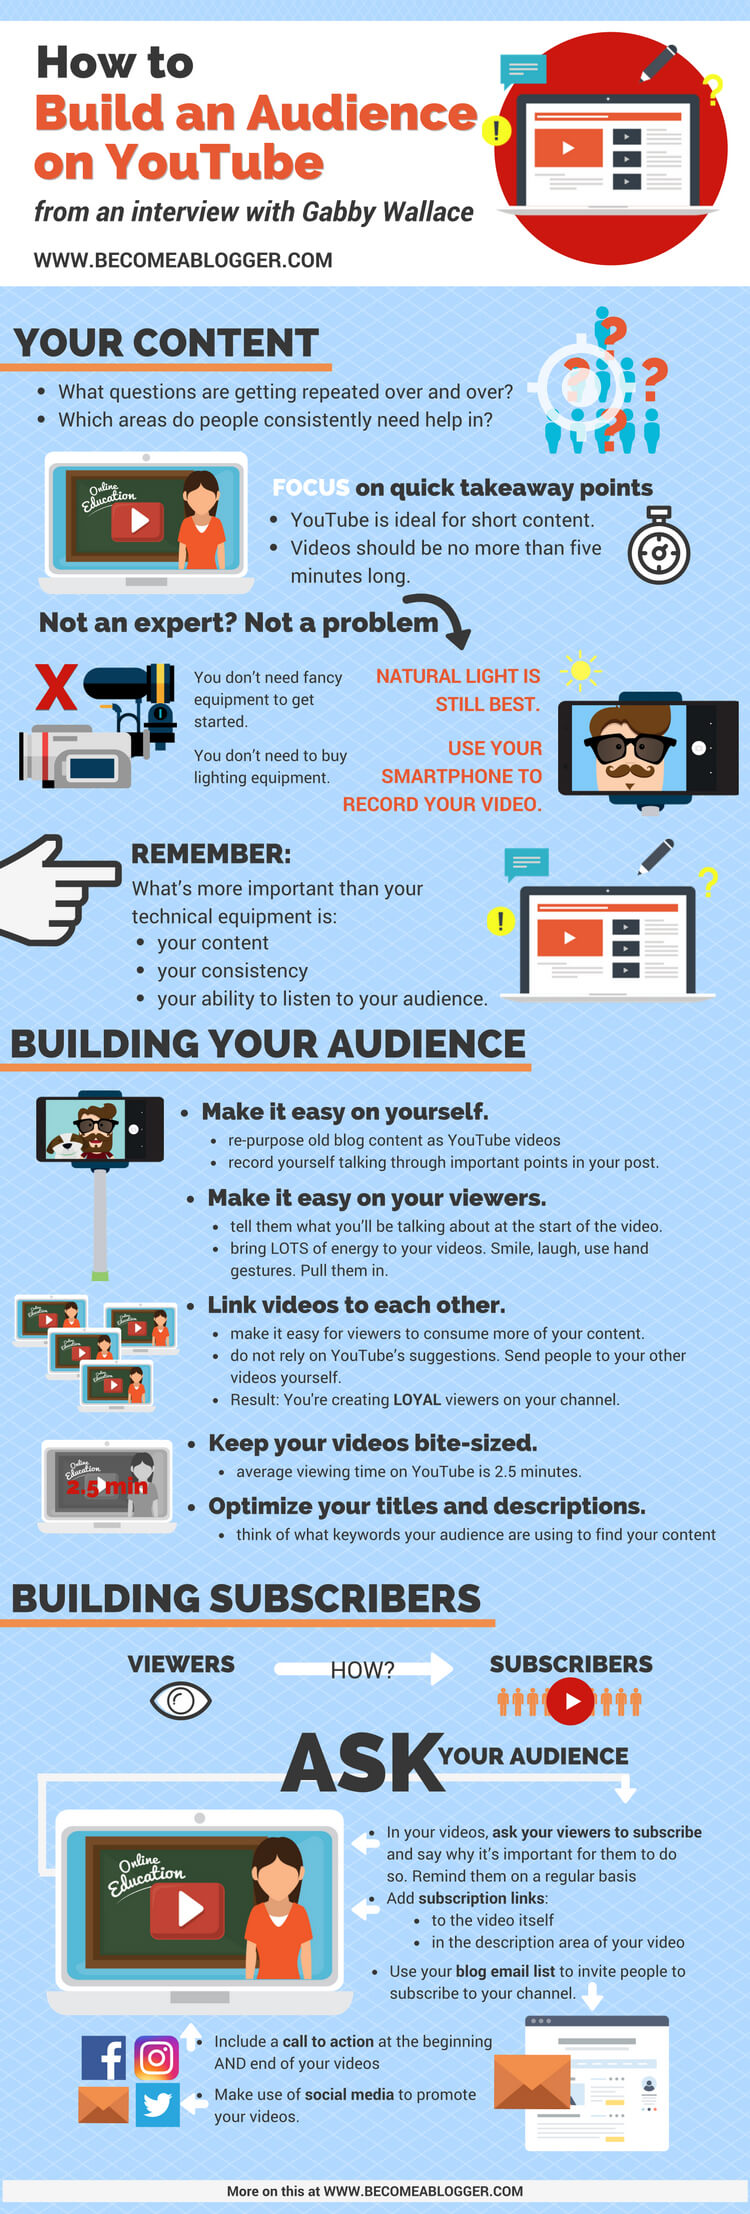 How to build an Audience on YouTube